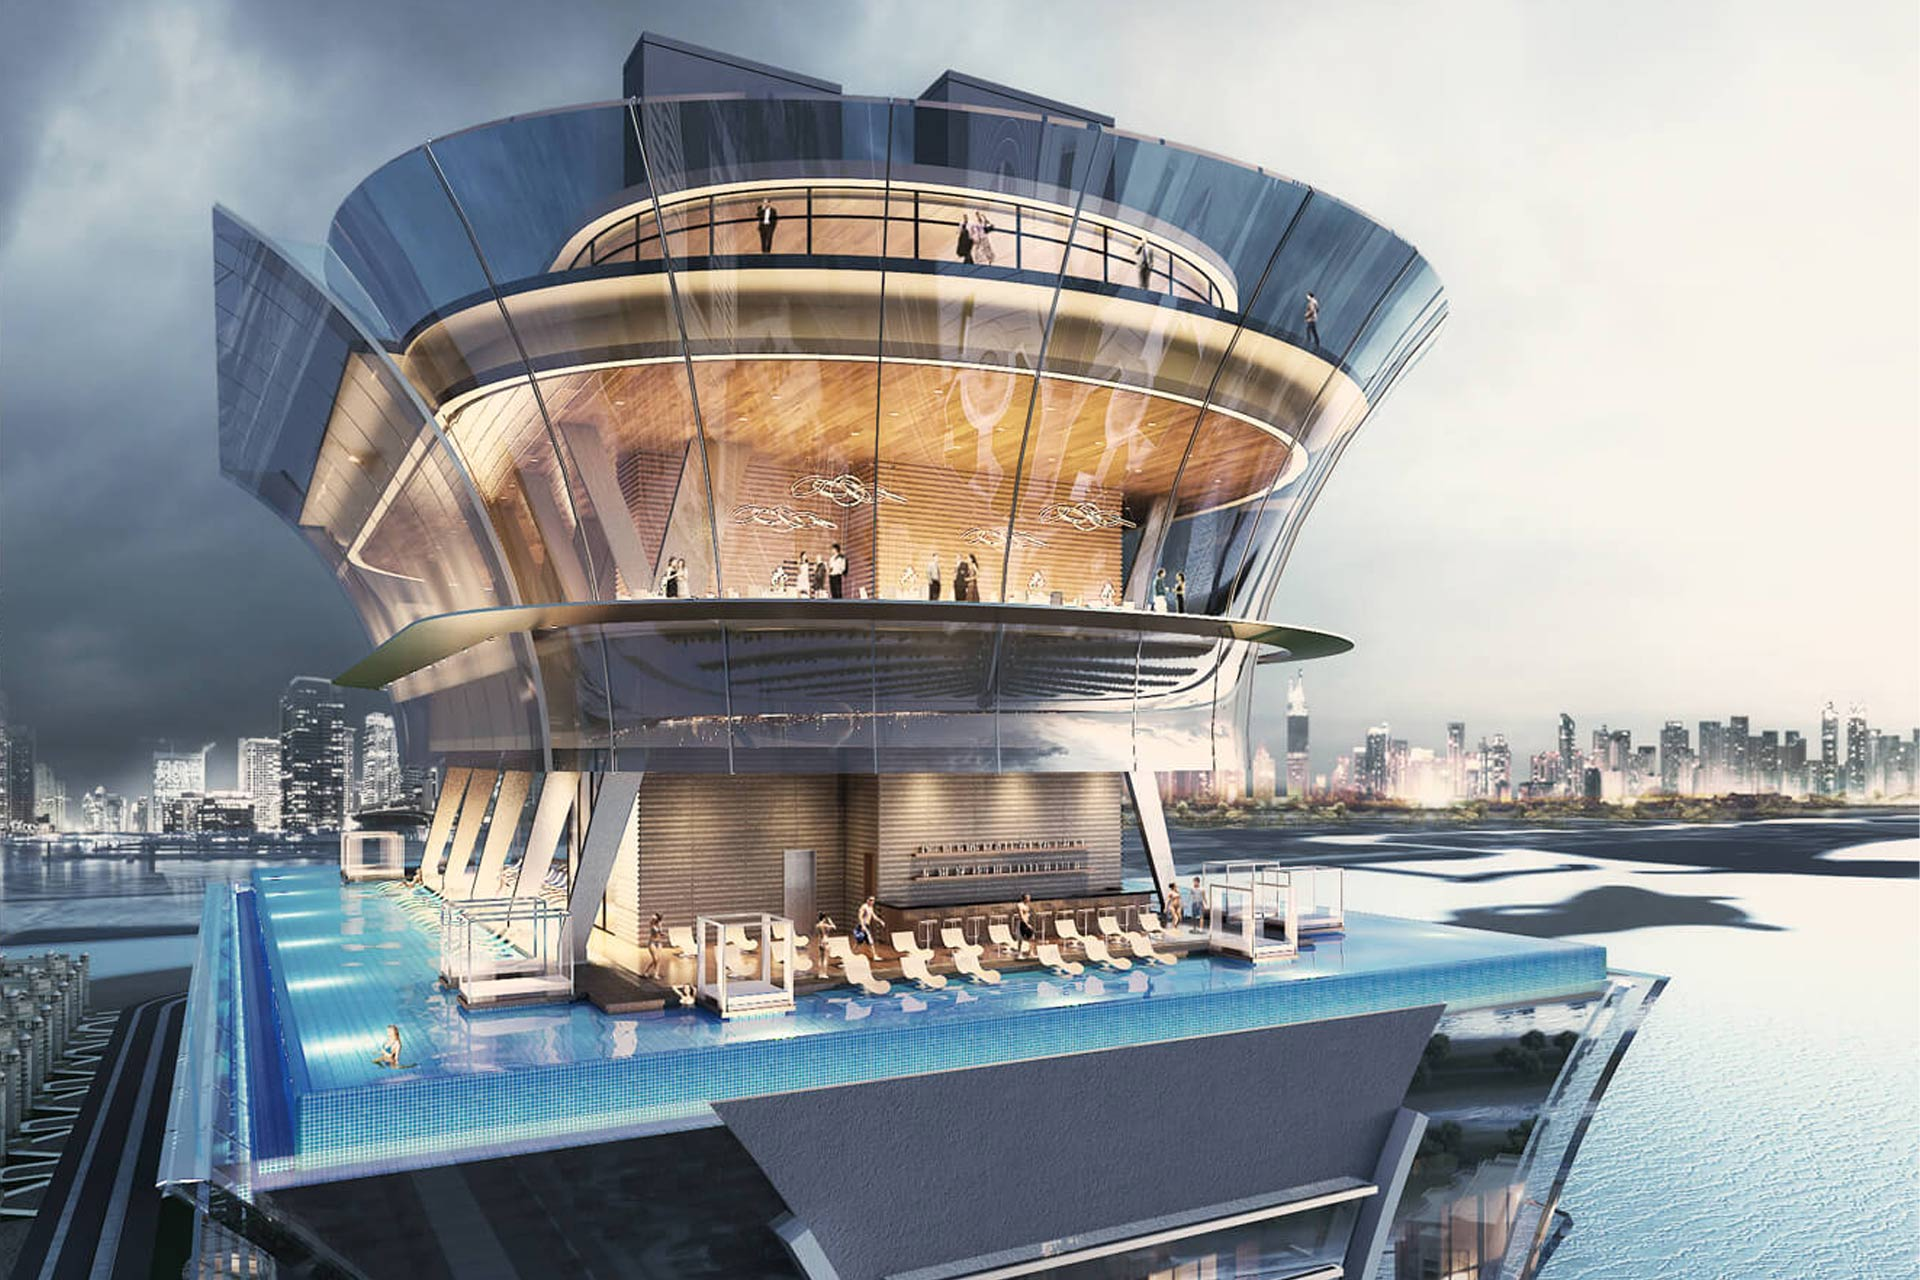 A rendering of St. Regis The Palm in Dubai